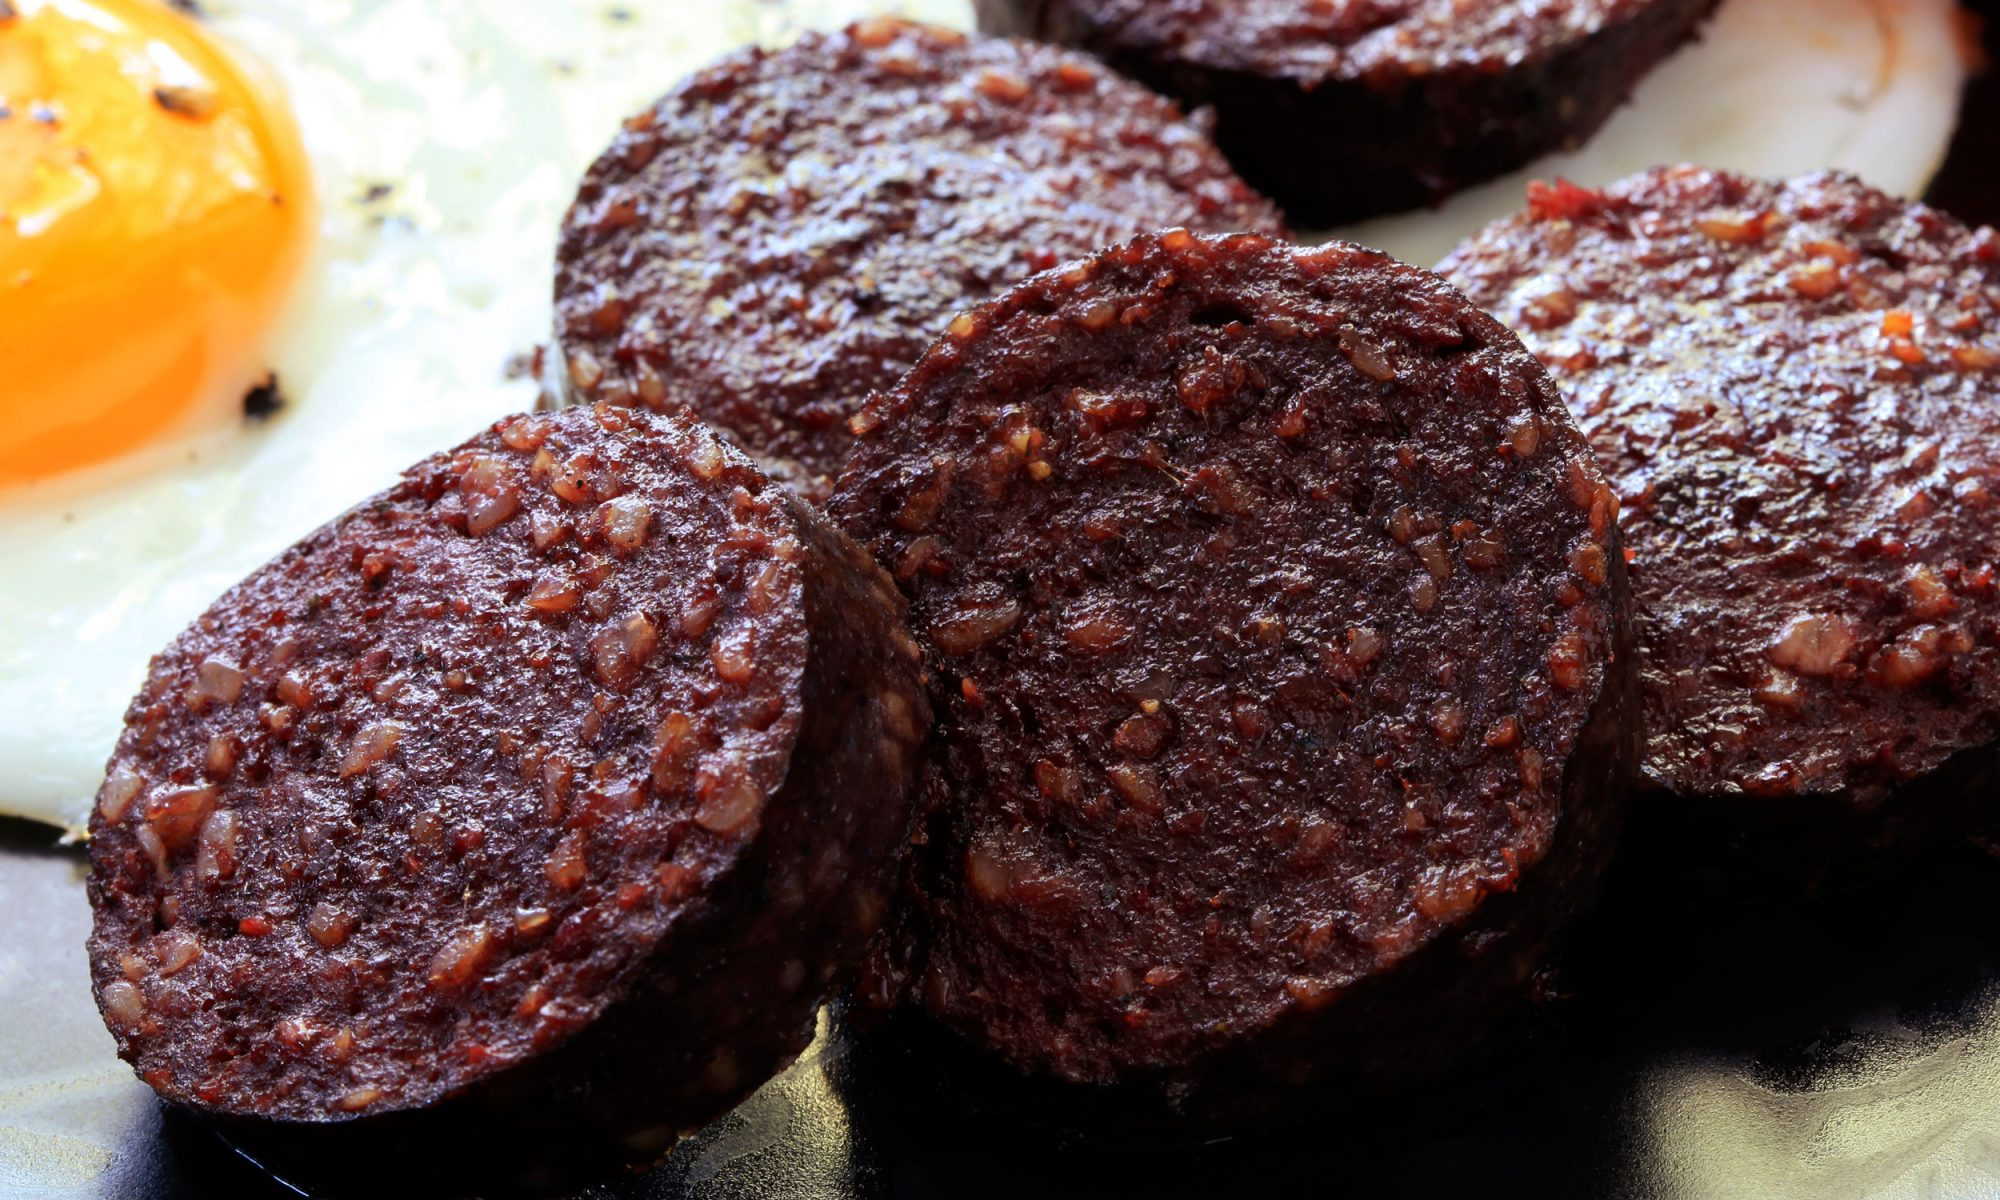 EC: 5 People from the United Kingdom Try to Explain Black Pudding